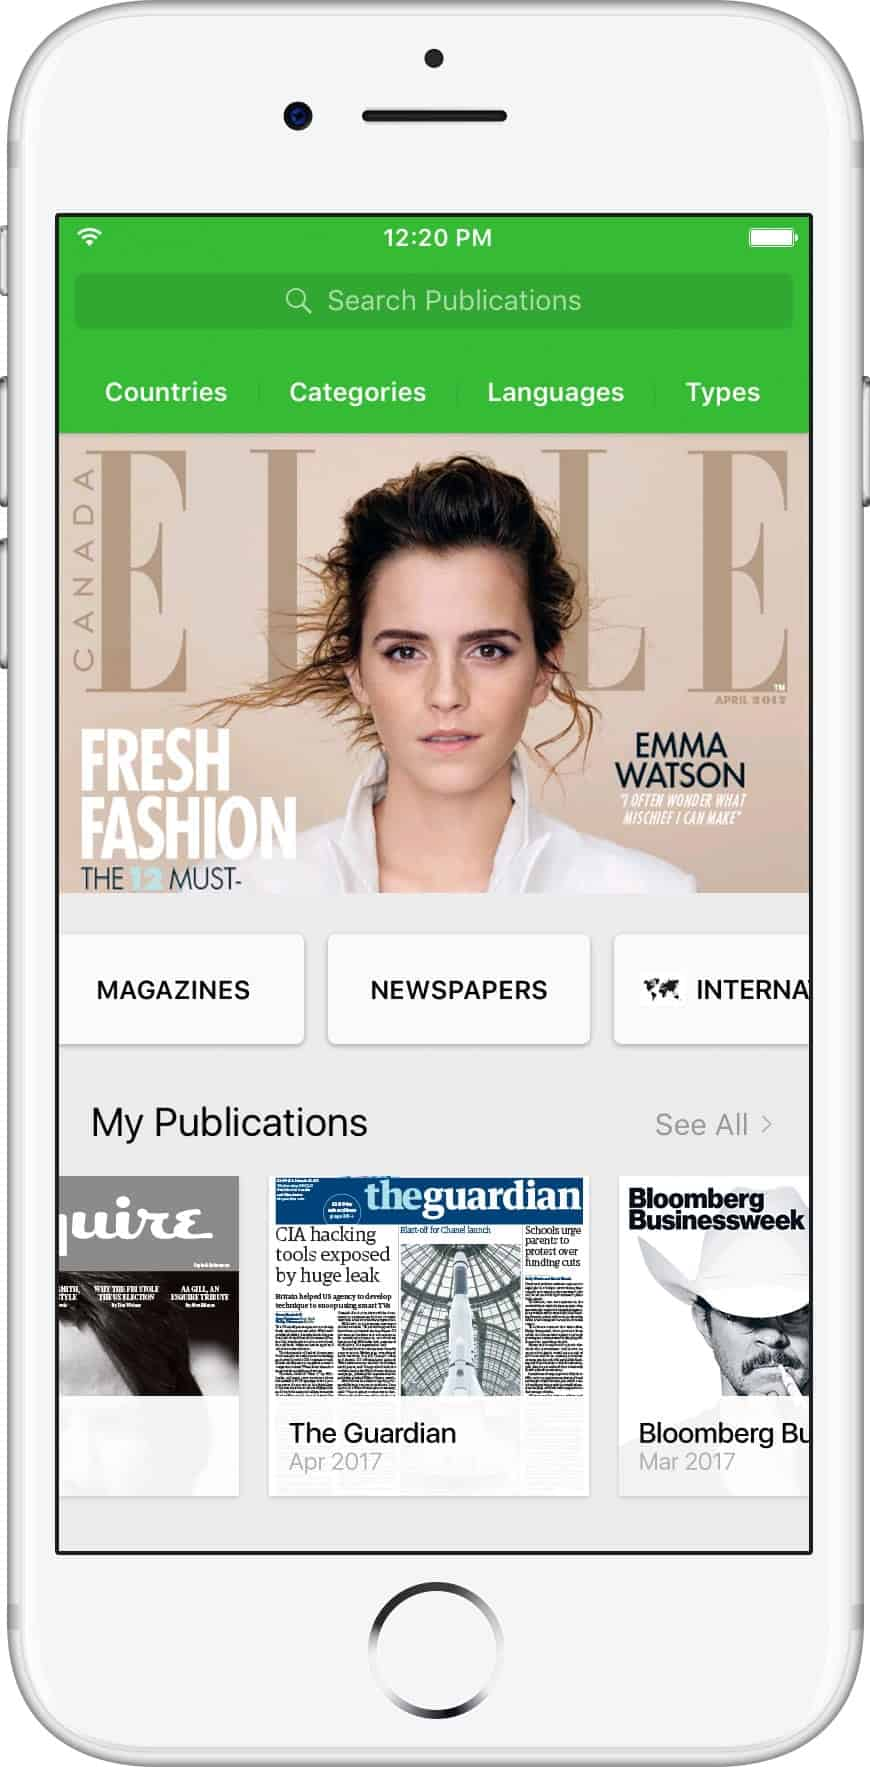 An image of the PressReader app displayed on an iPhone showing the cover of Elle magazine, featuring Emma Watson.